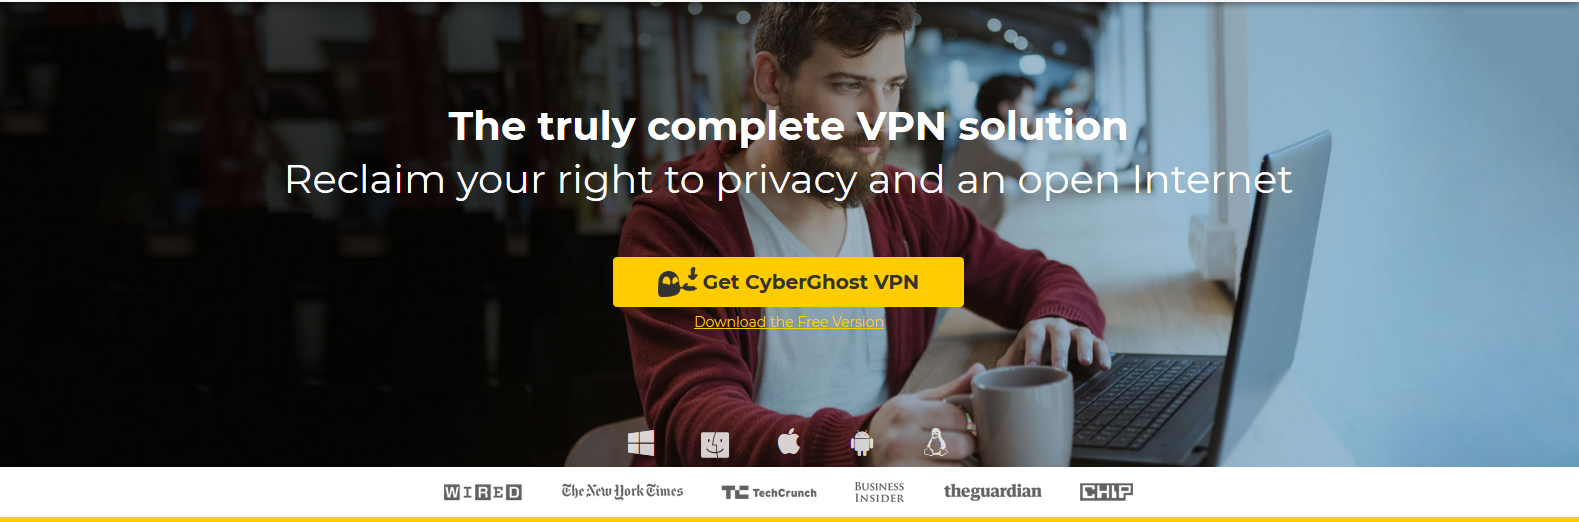 Best VPN Services CyberGhost VPN